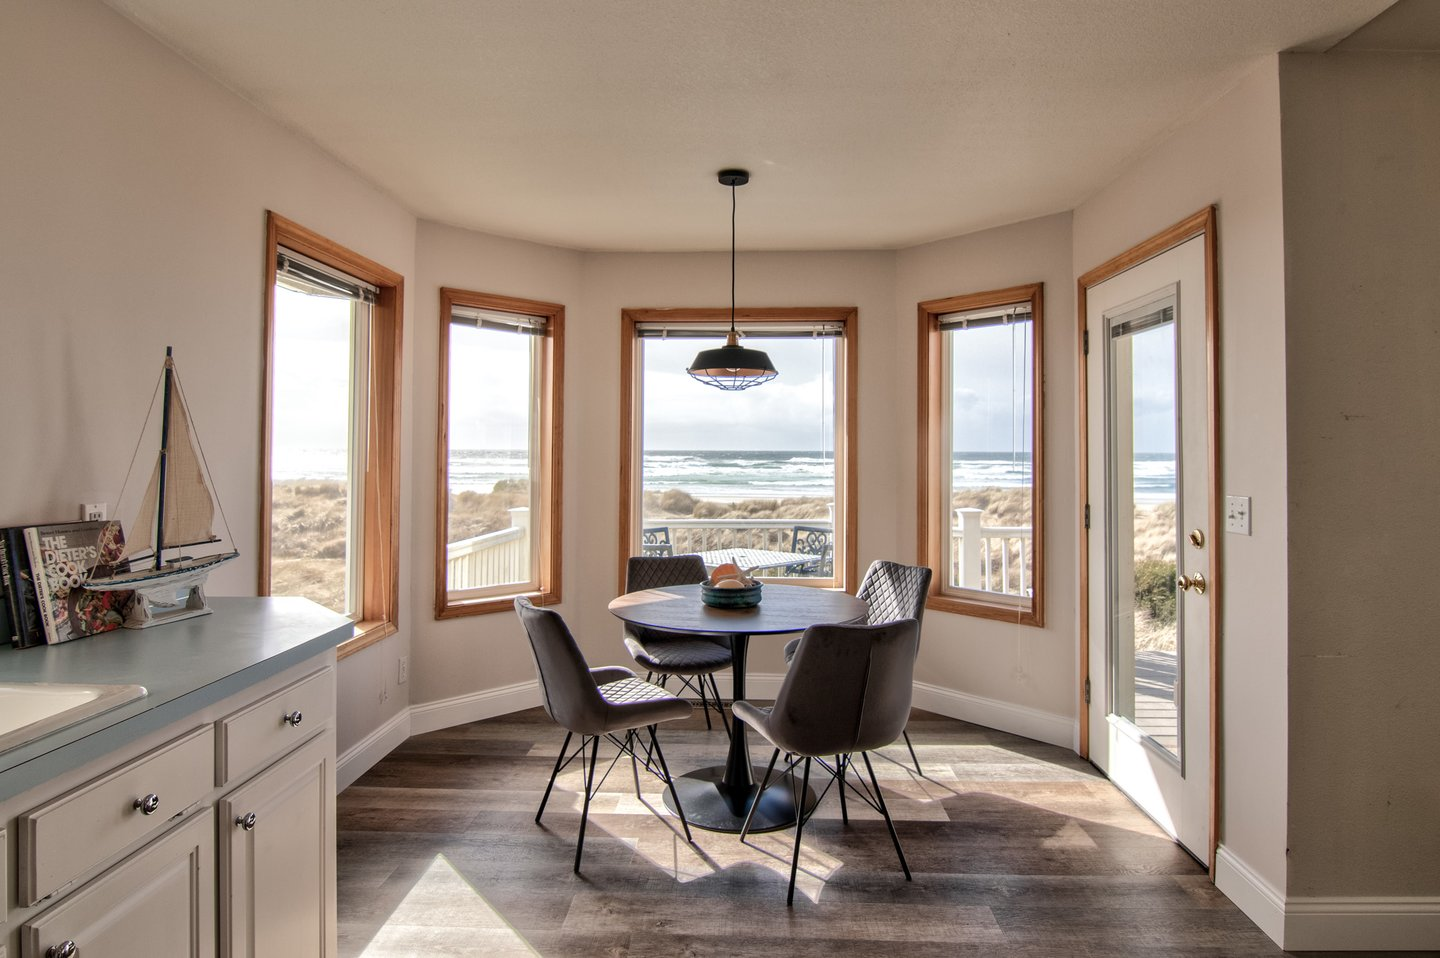 Enjoy coffee in the sun-filled breakfast nook.